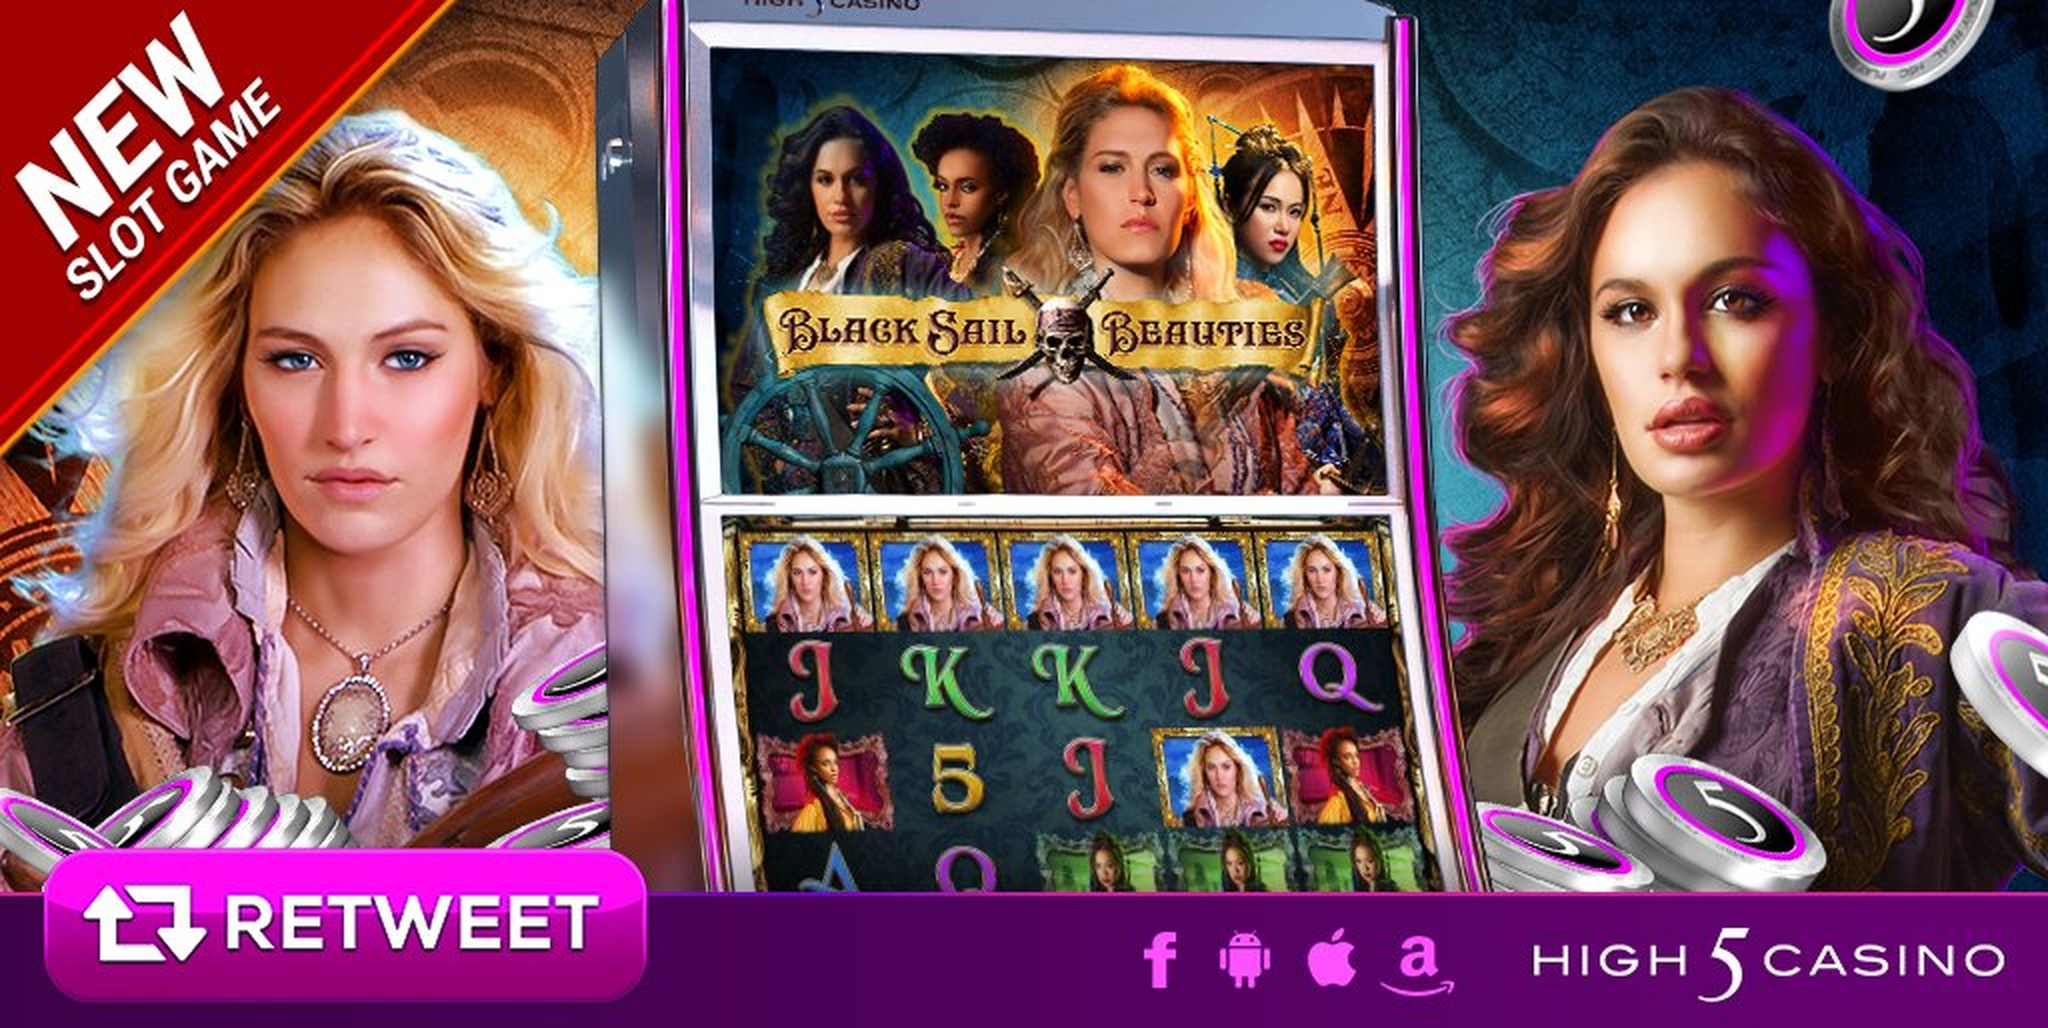 The Black Sail Beauties Online Slot Demo Game by High 5 Games